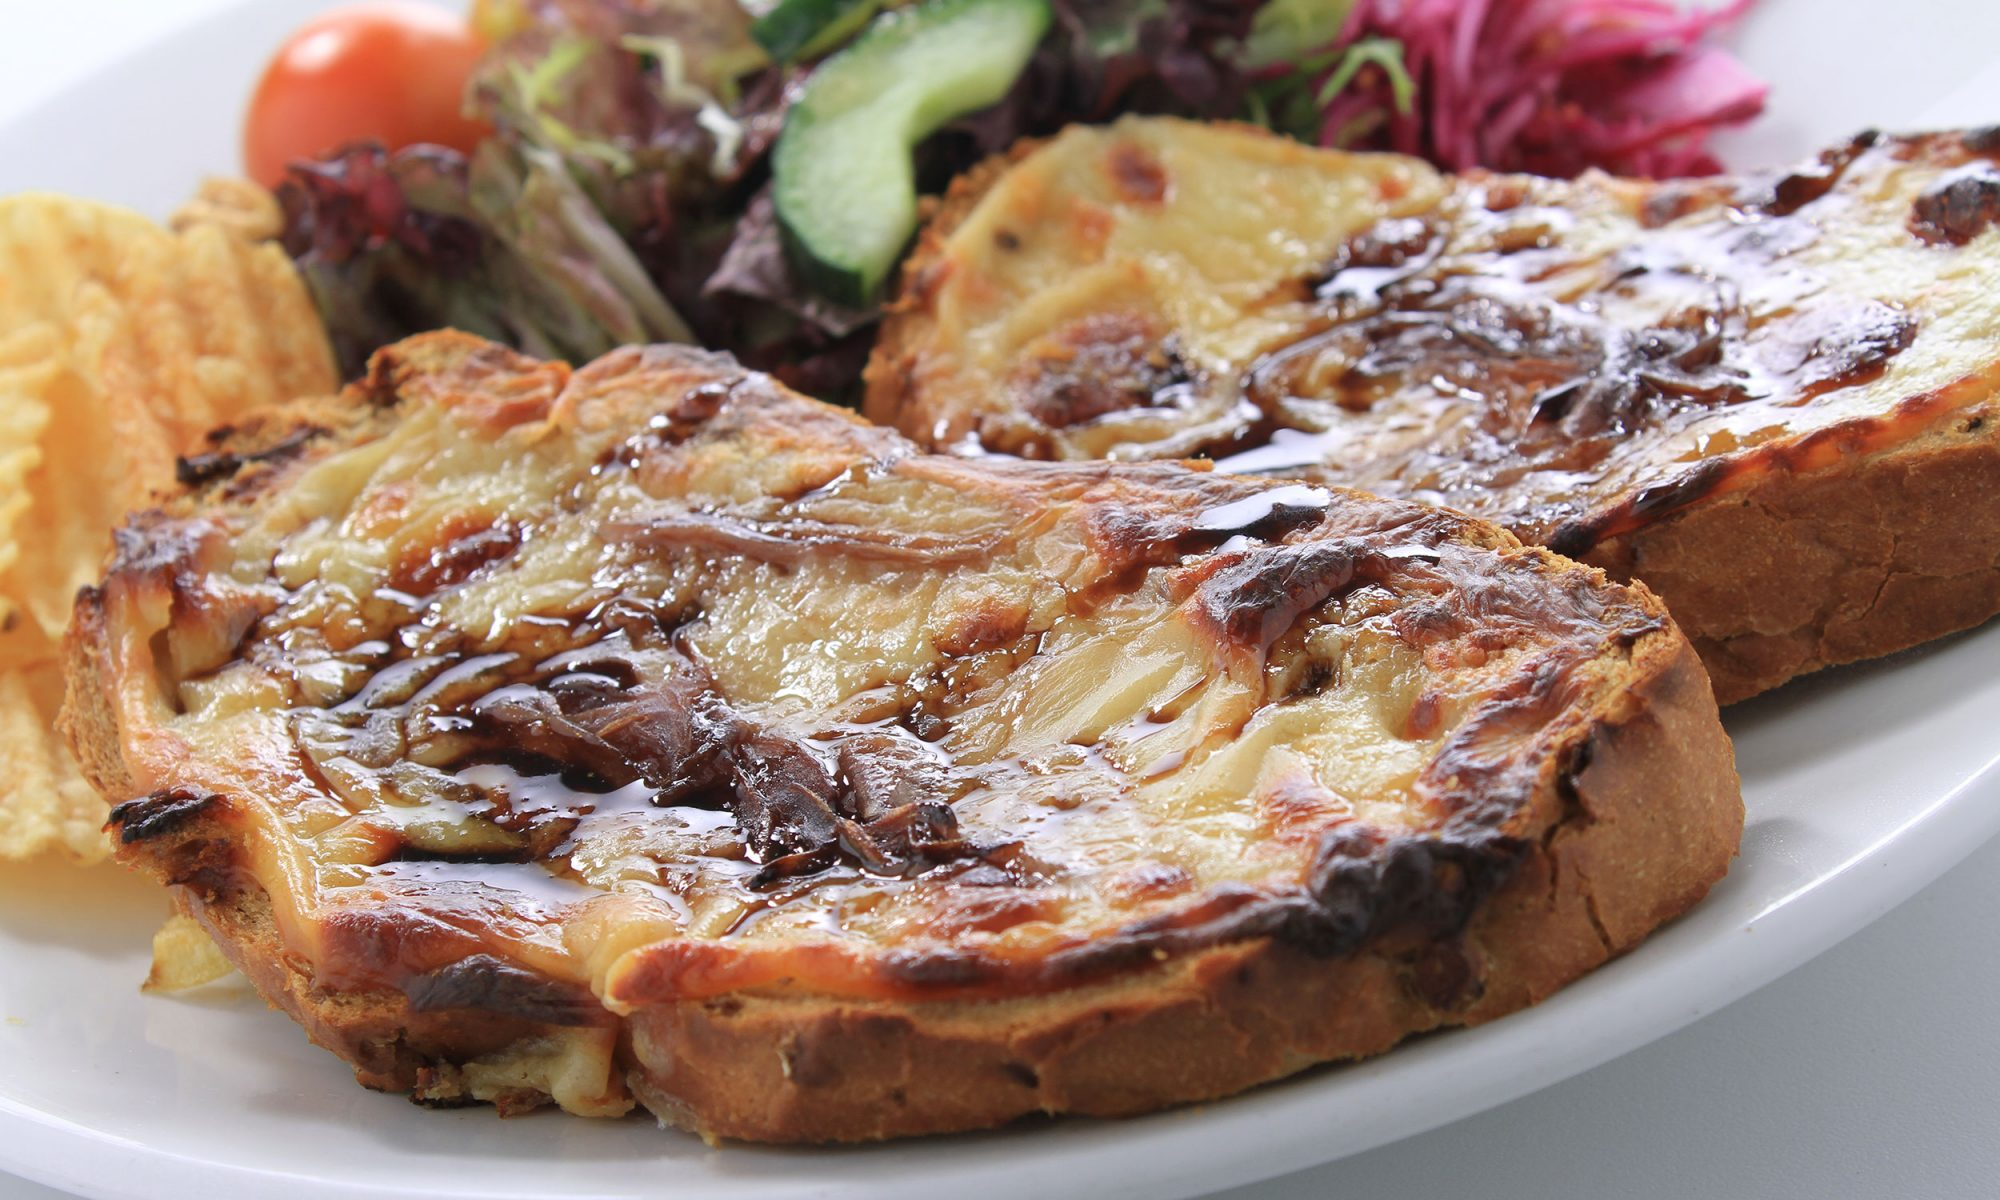 Make Welsh Rarebit for Breakfast Like the Champ You Are